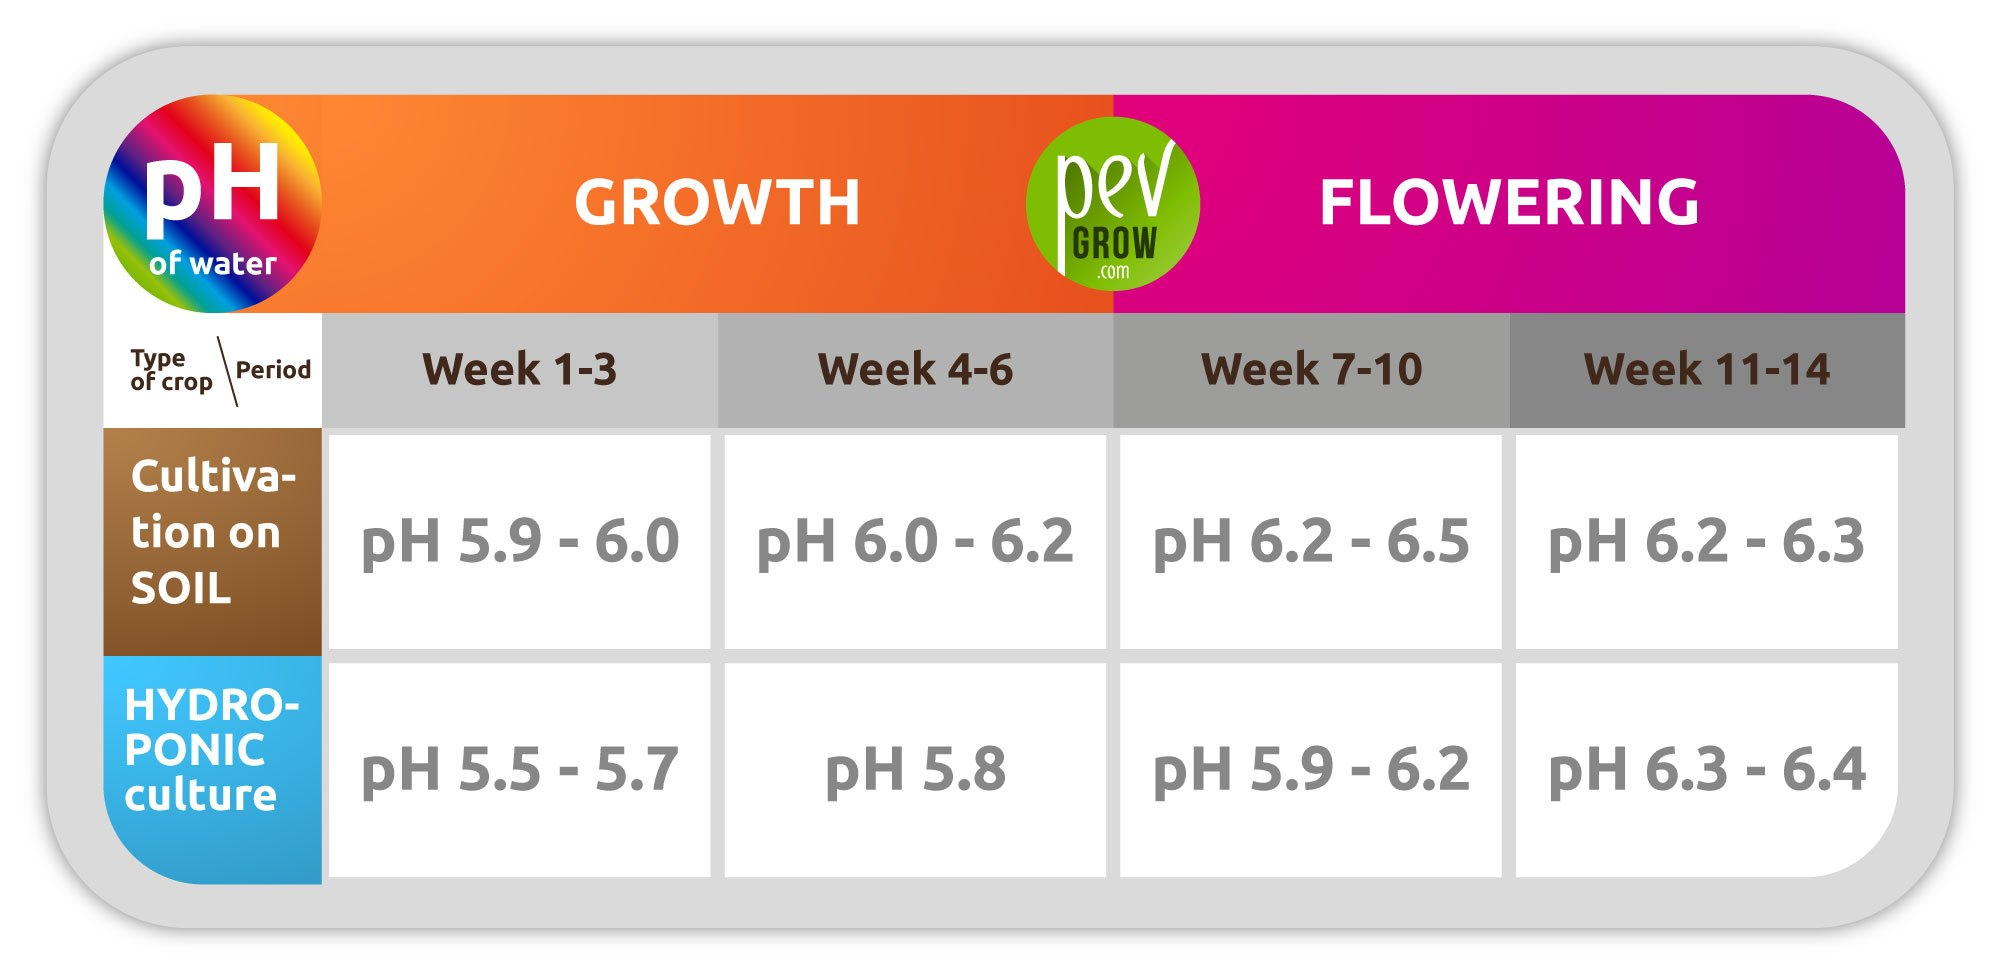 Recommended pH measurements of water depending on the type of crop